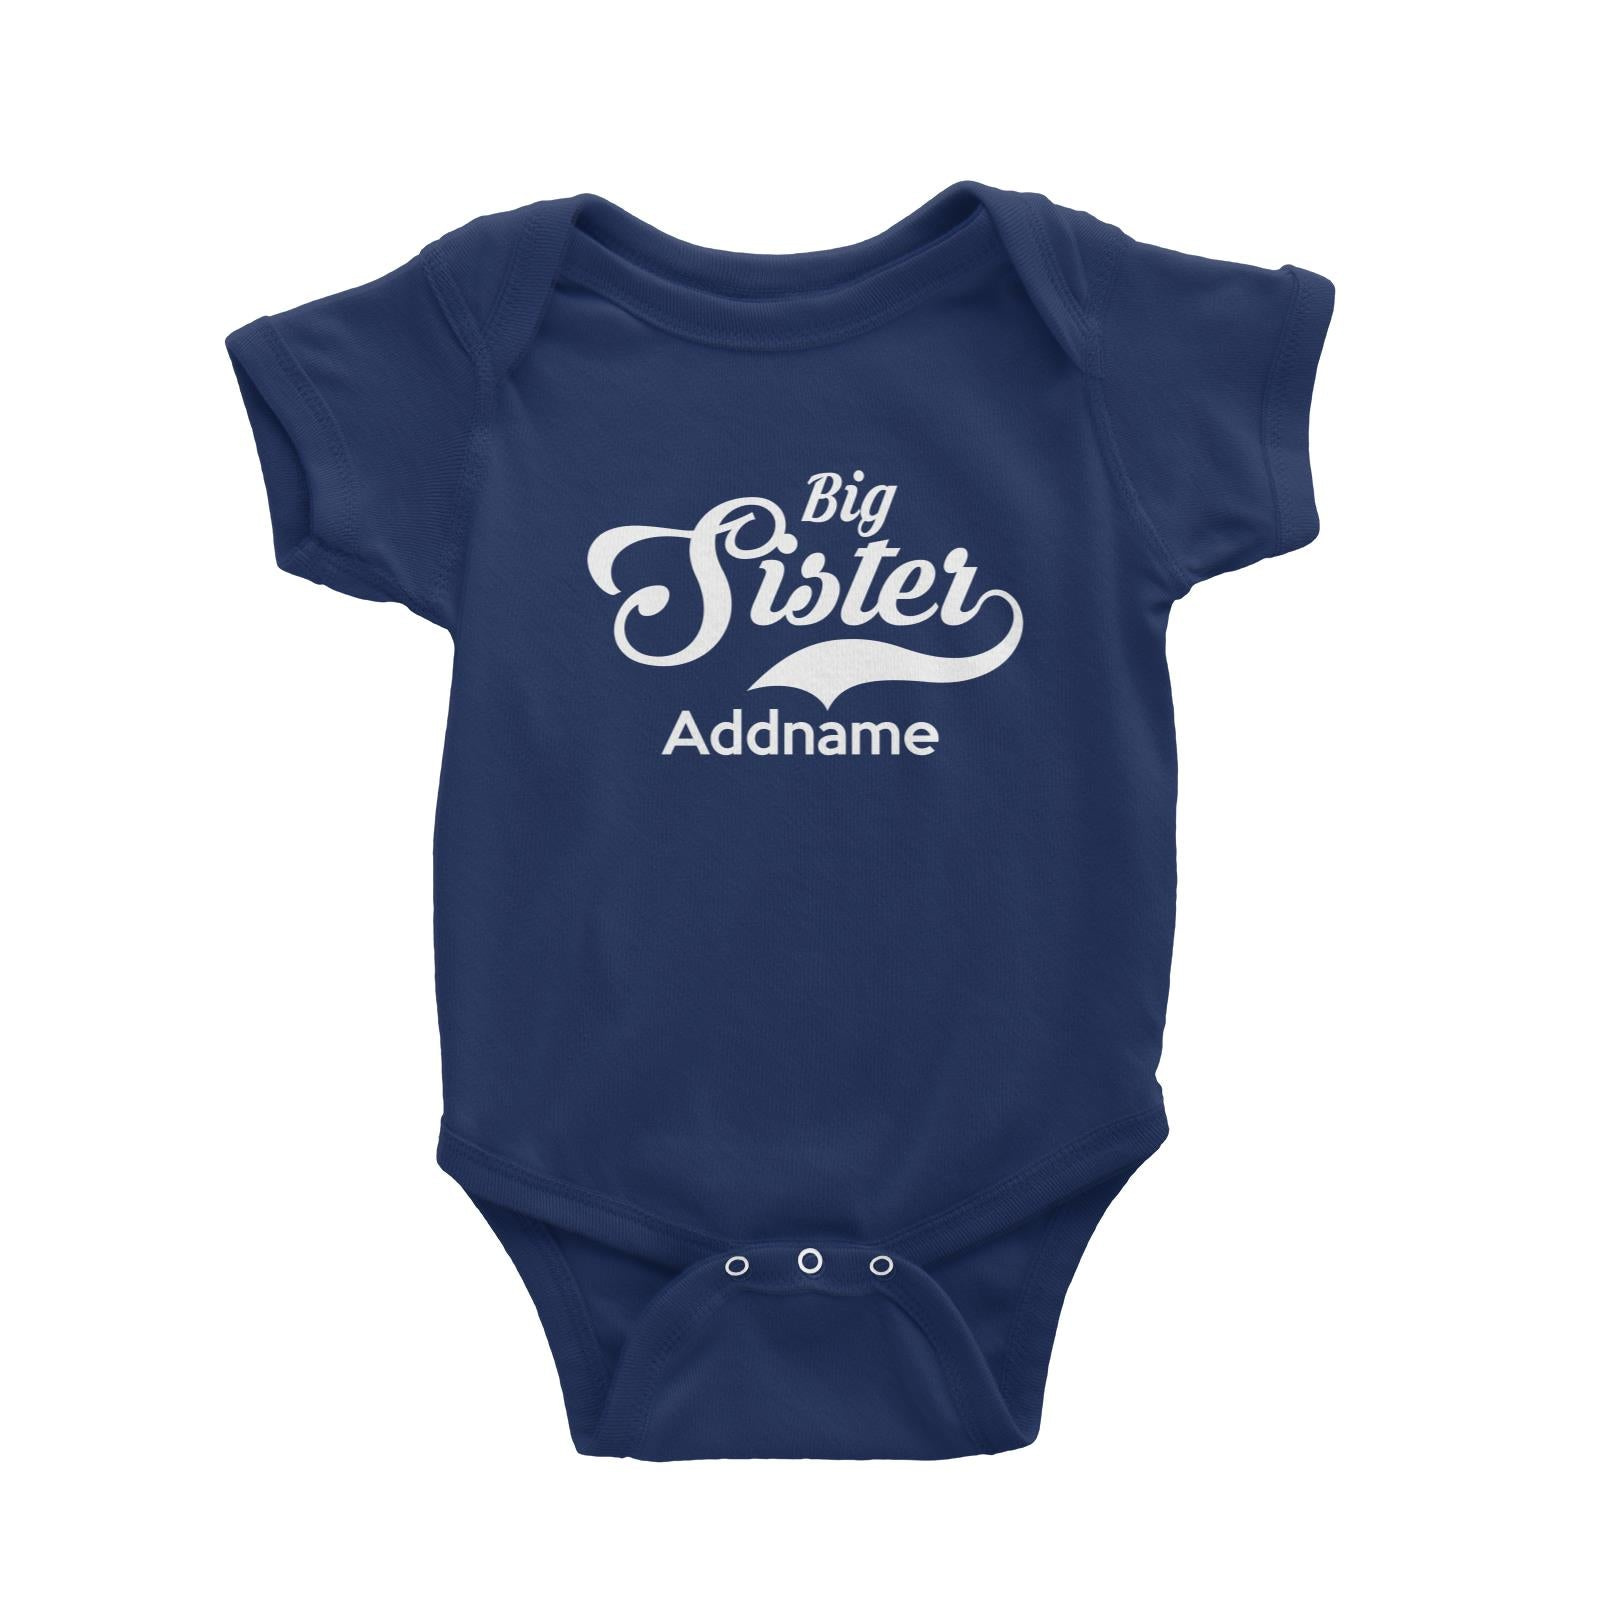 Retro Big Sister Addname Baby Romper  Matching Family Personalizable Designs